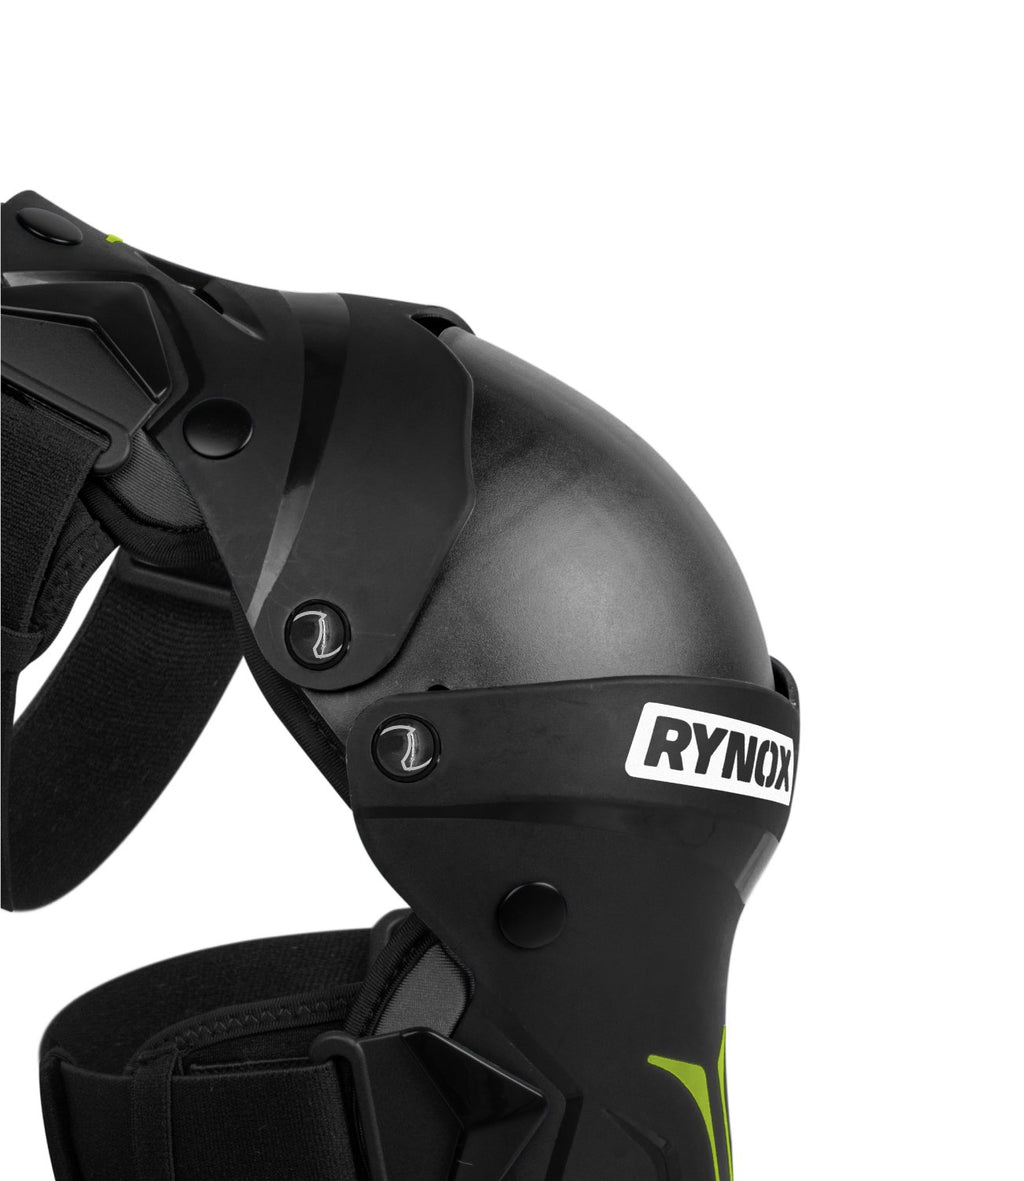 RYNOX BASTION BIONIC KNEE GUARDS - BLACK HI-VIZ GREEN